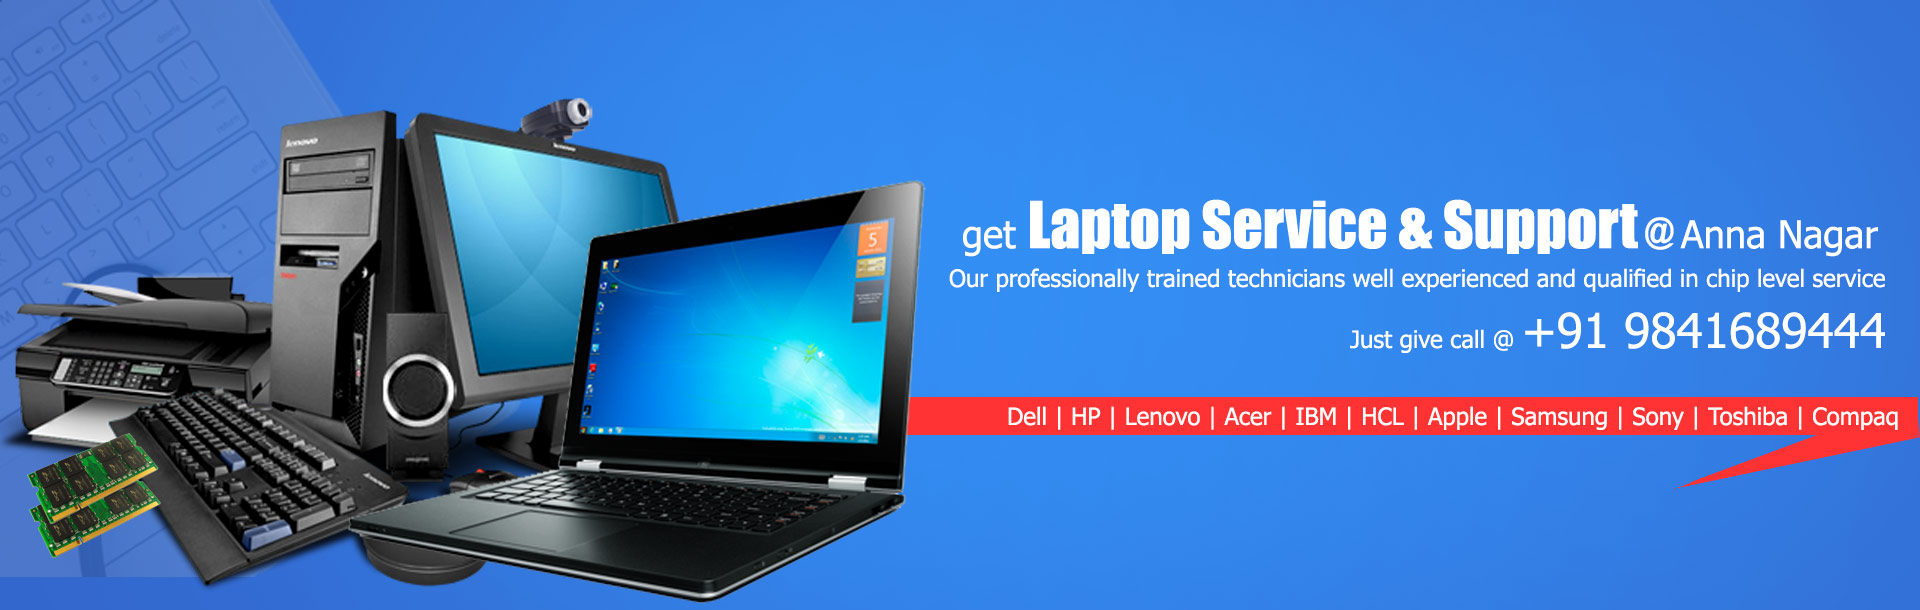 laptop service center in anna nagar